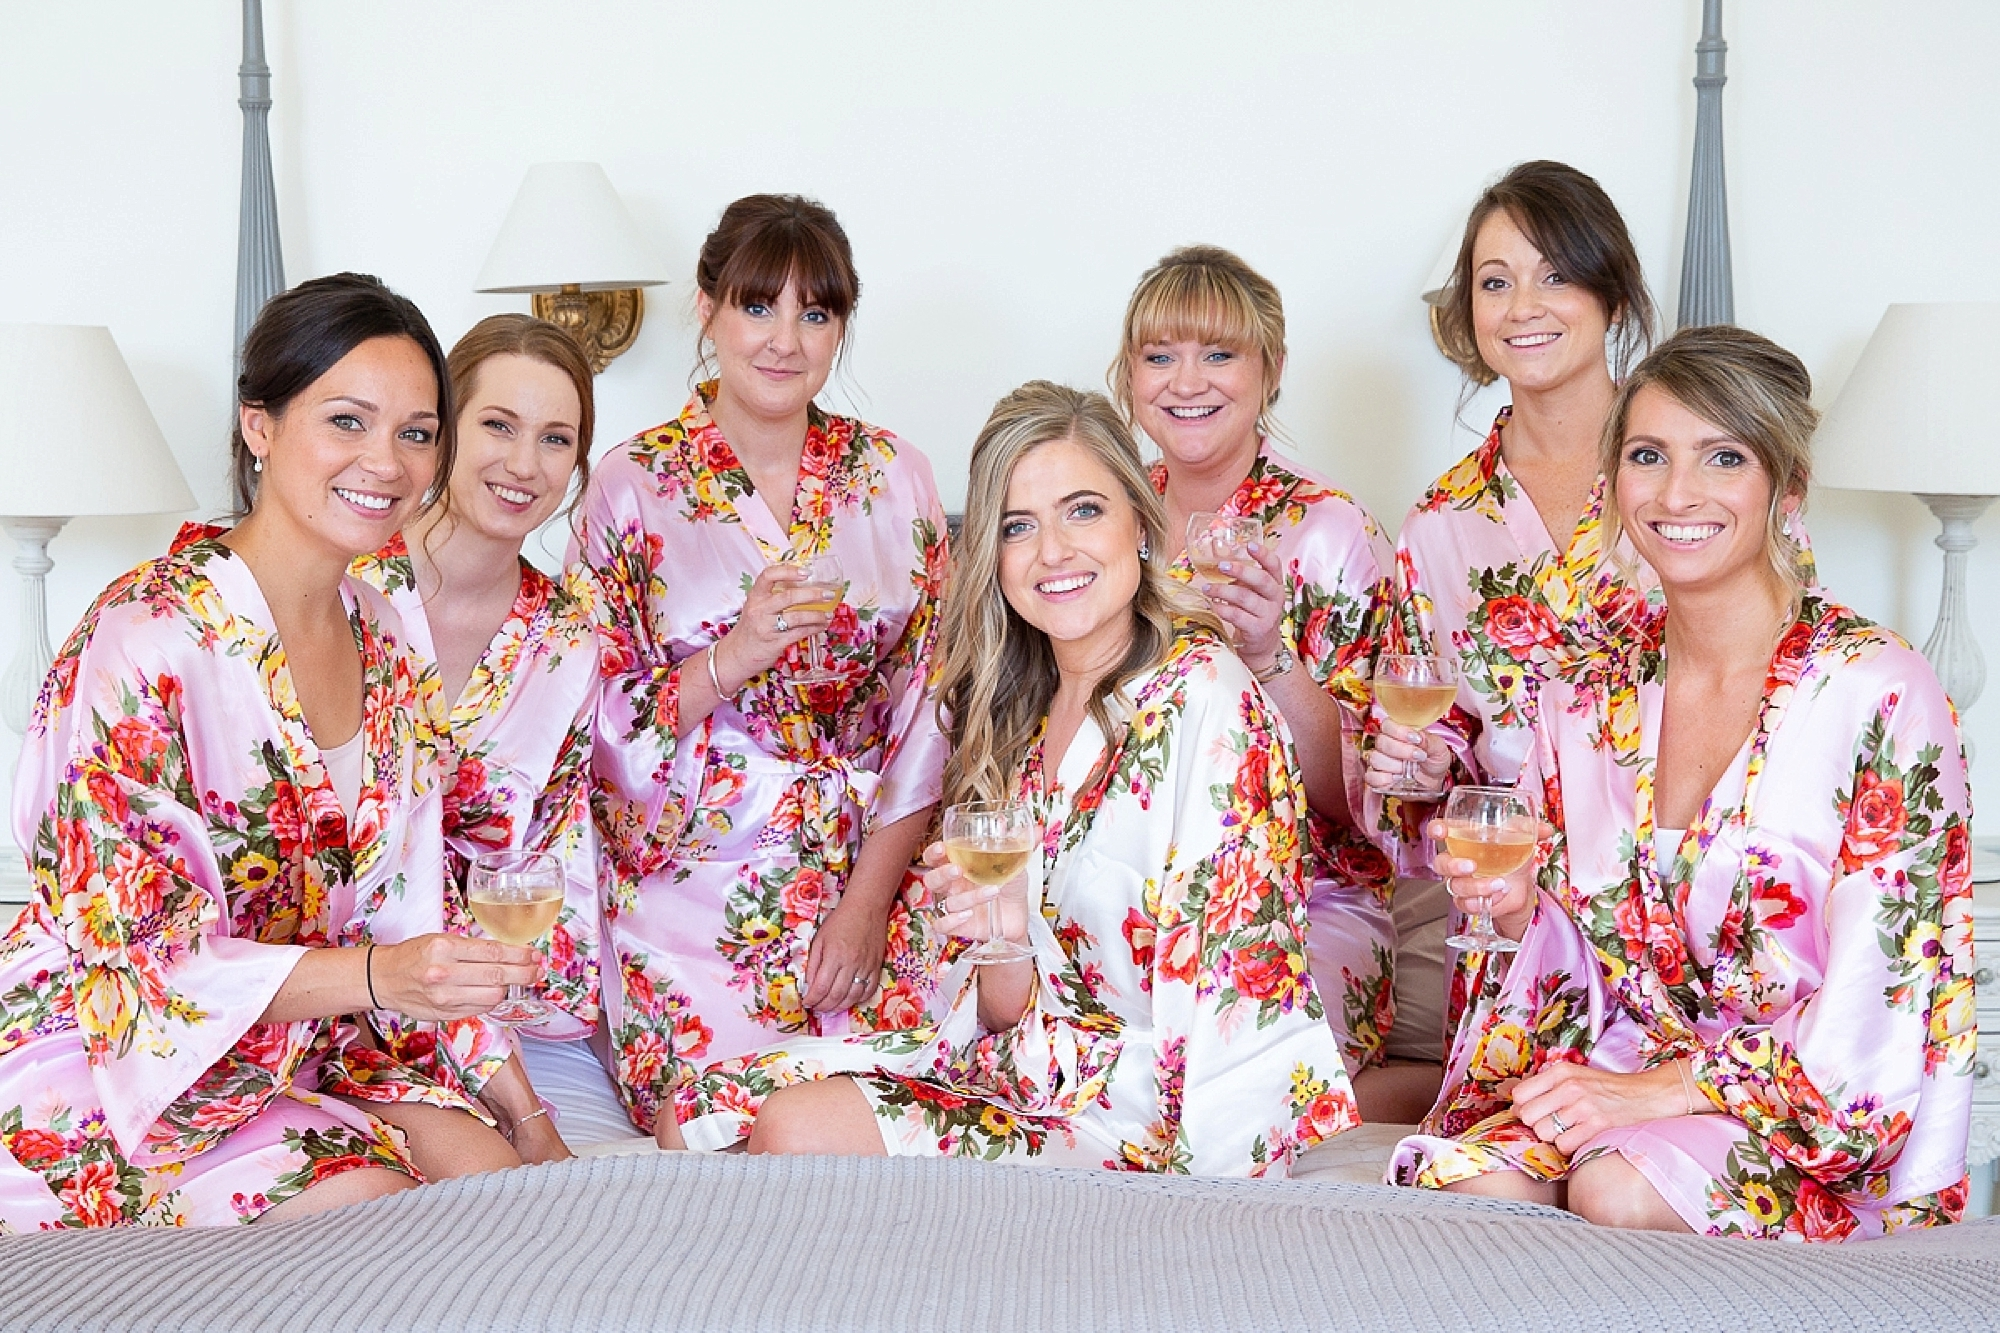 bridal party at wedding in Pynes house sit on bed together